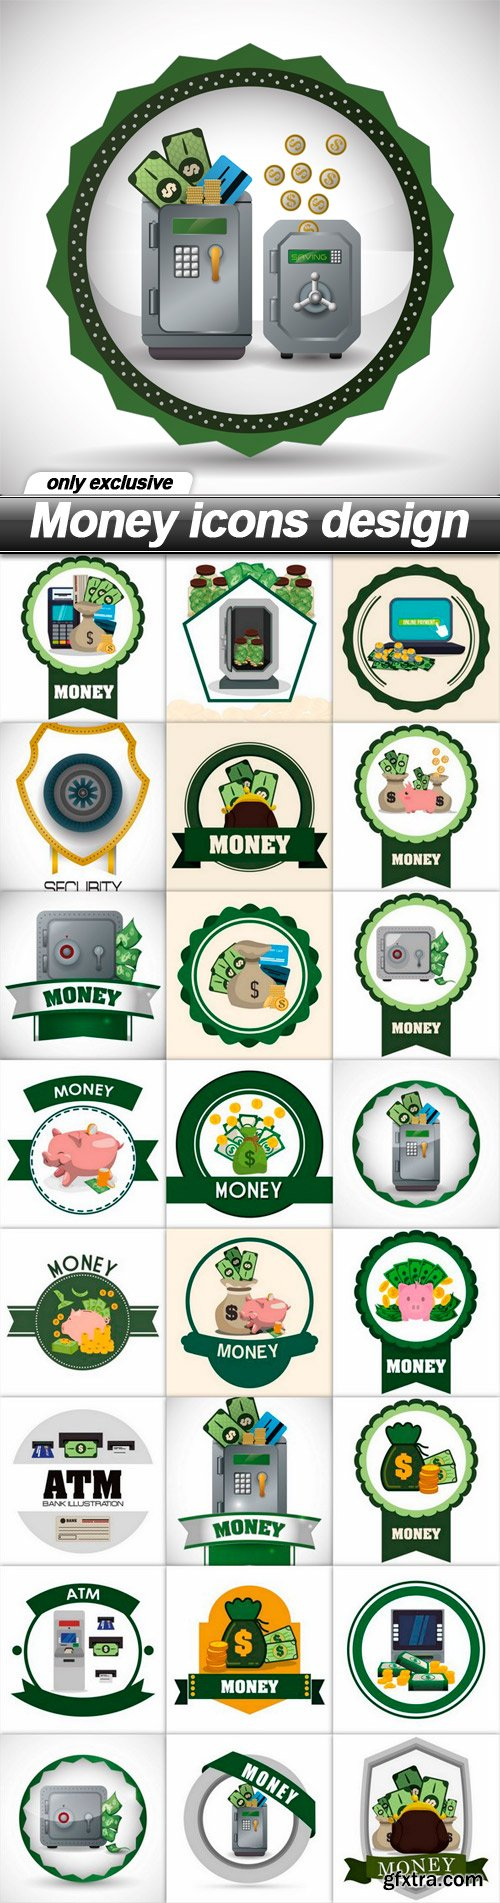 Money icons design - 25 EPS